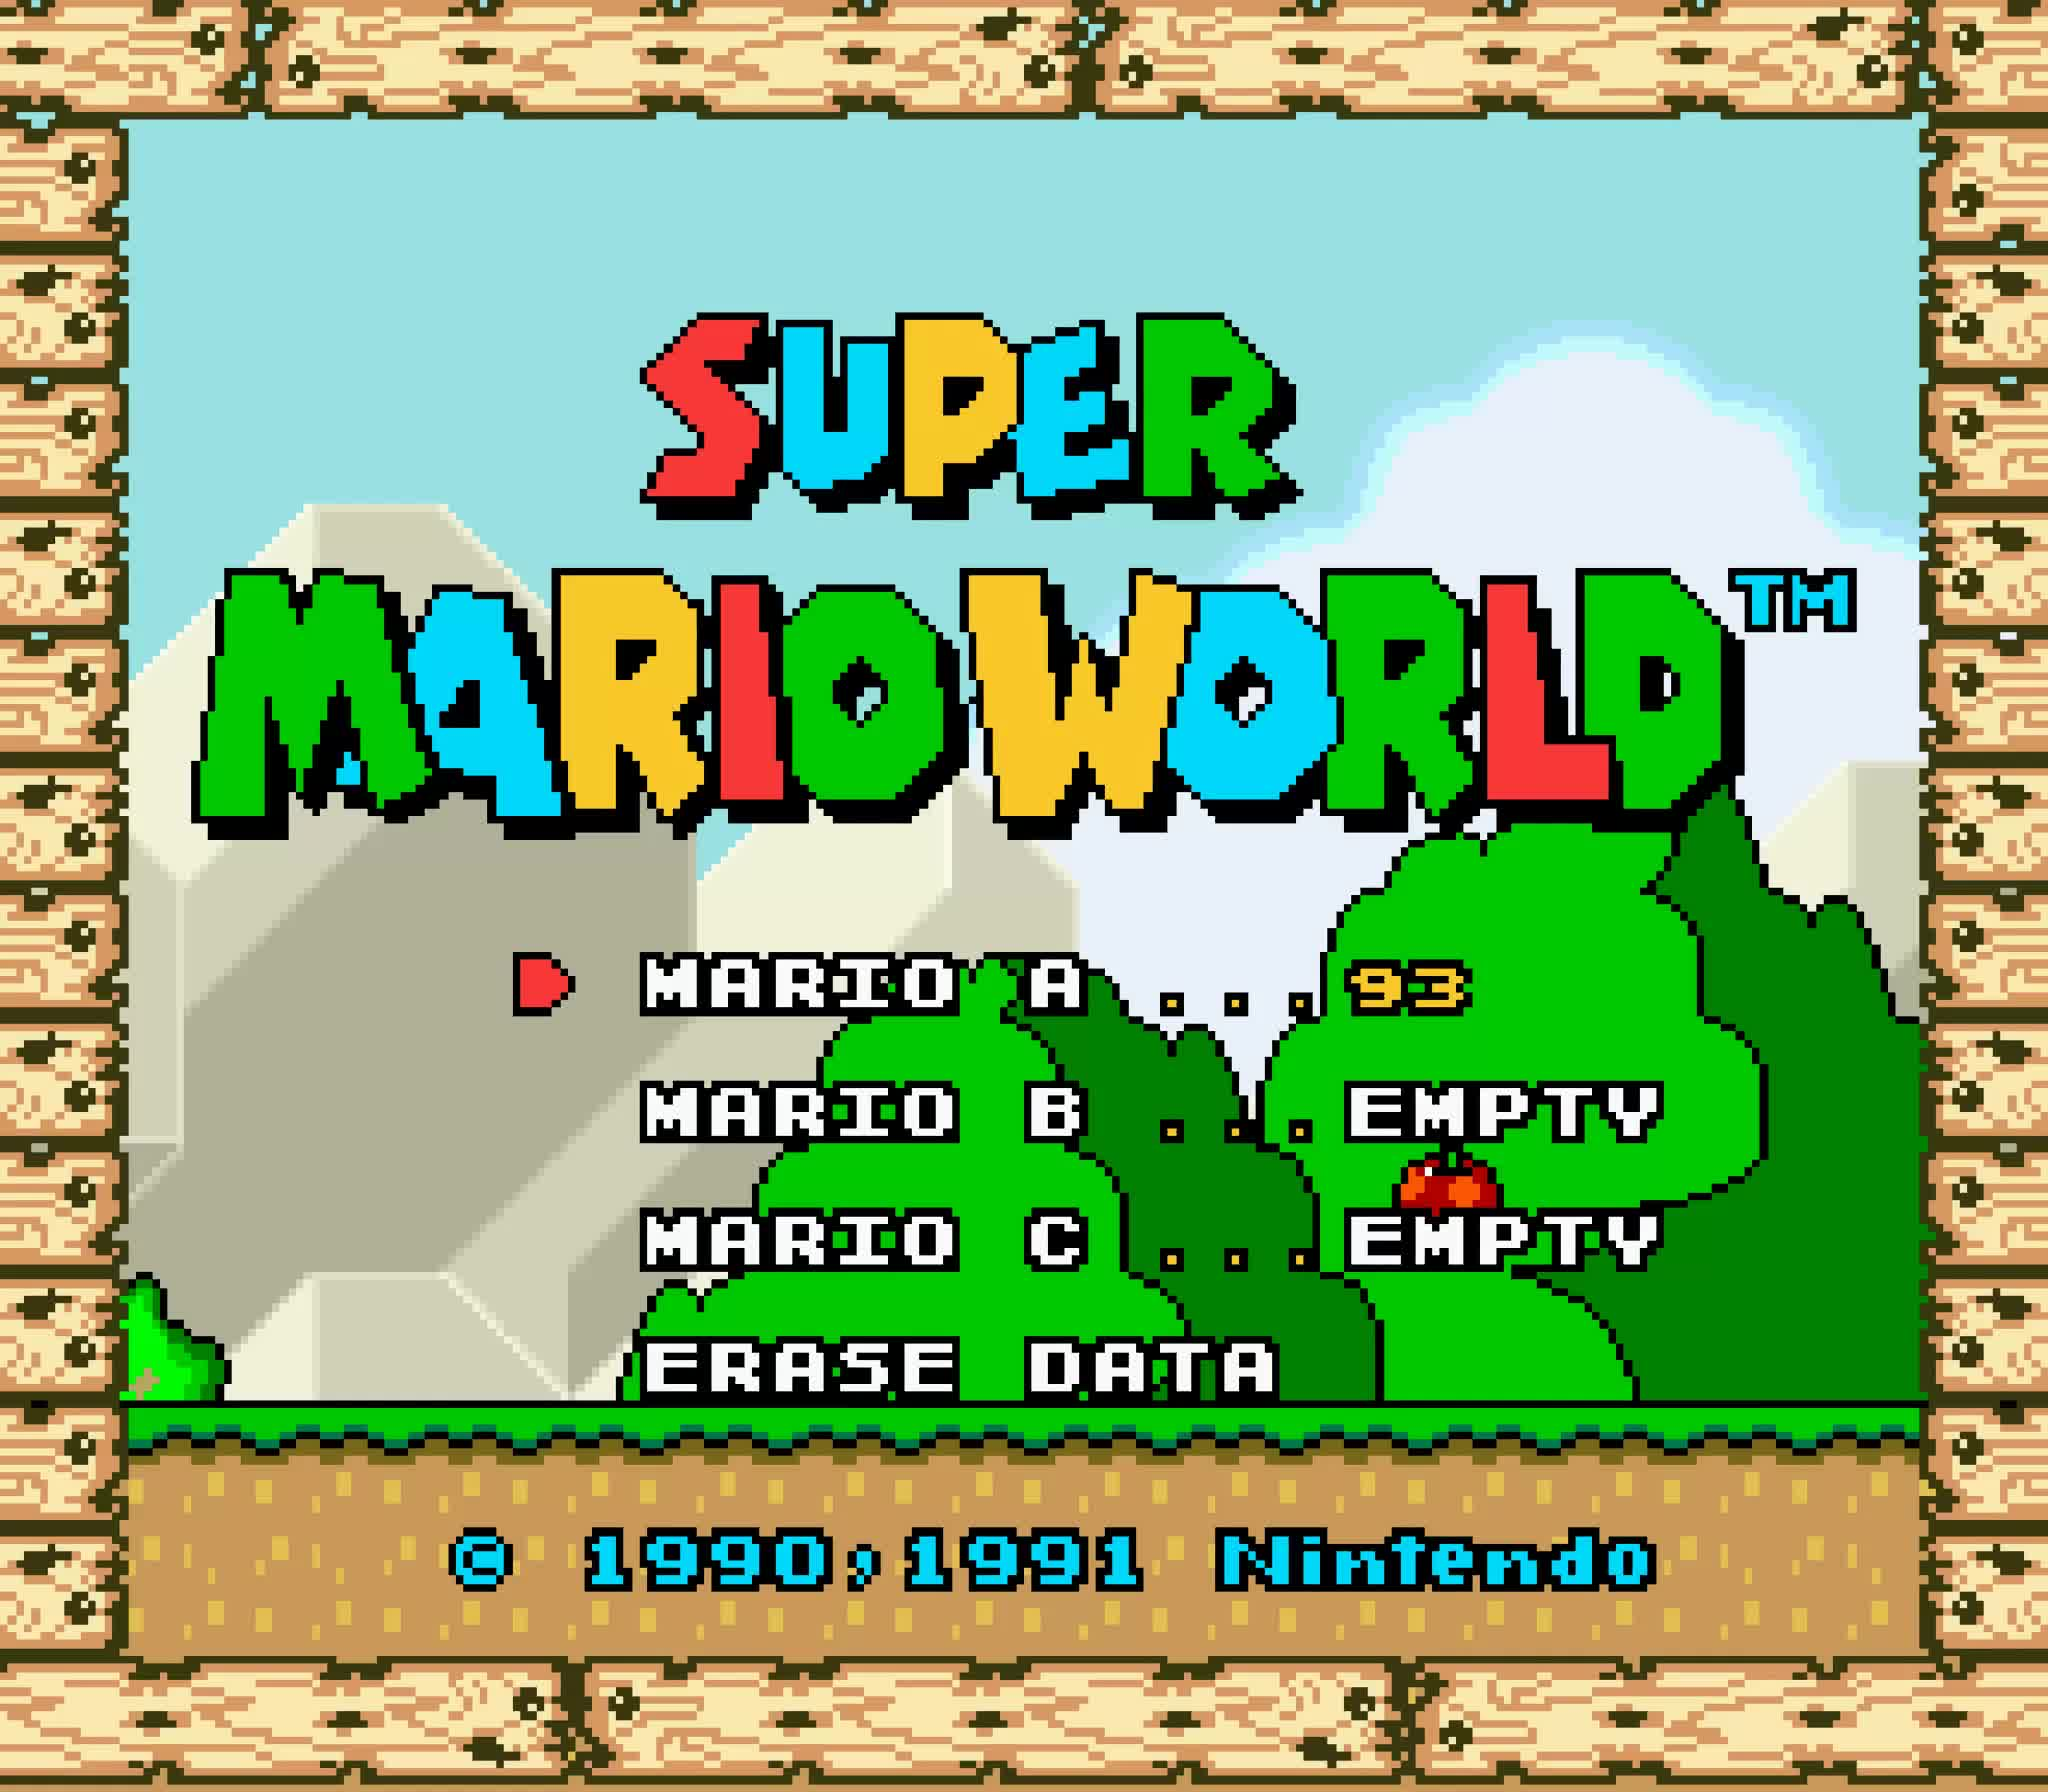 Nintendo dataminers rebuild Super Mario World soundtrack from original samples